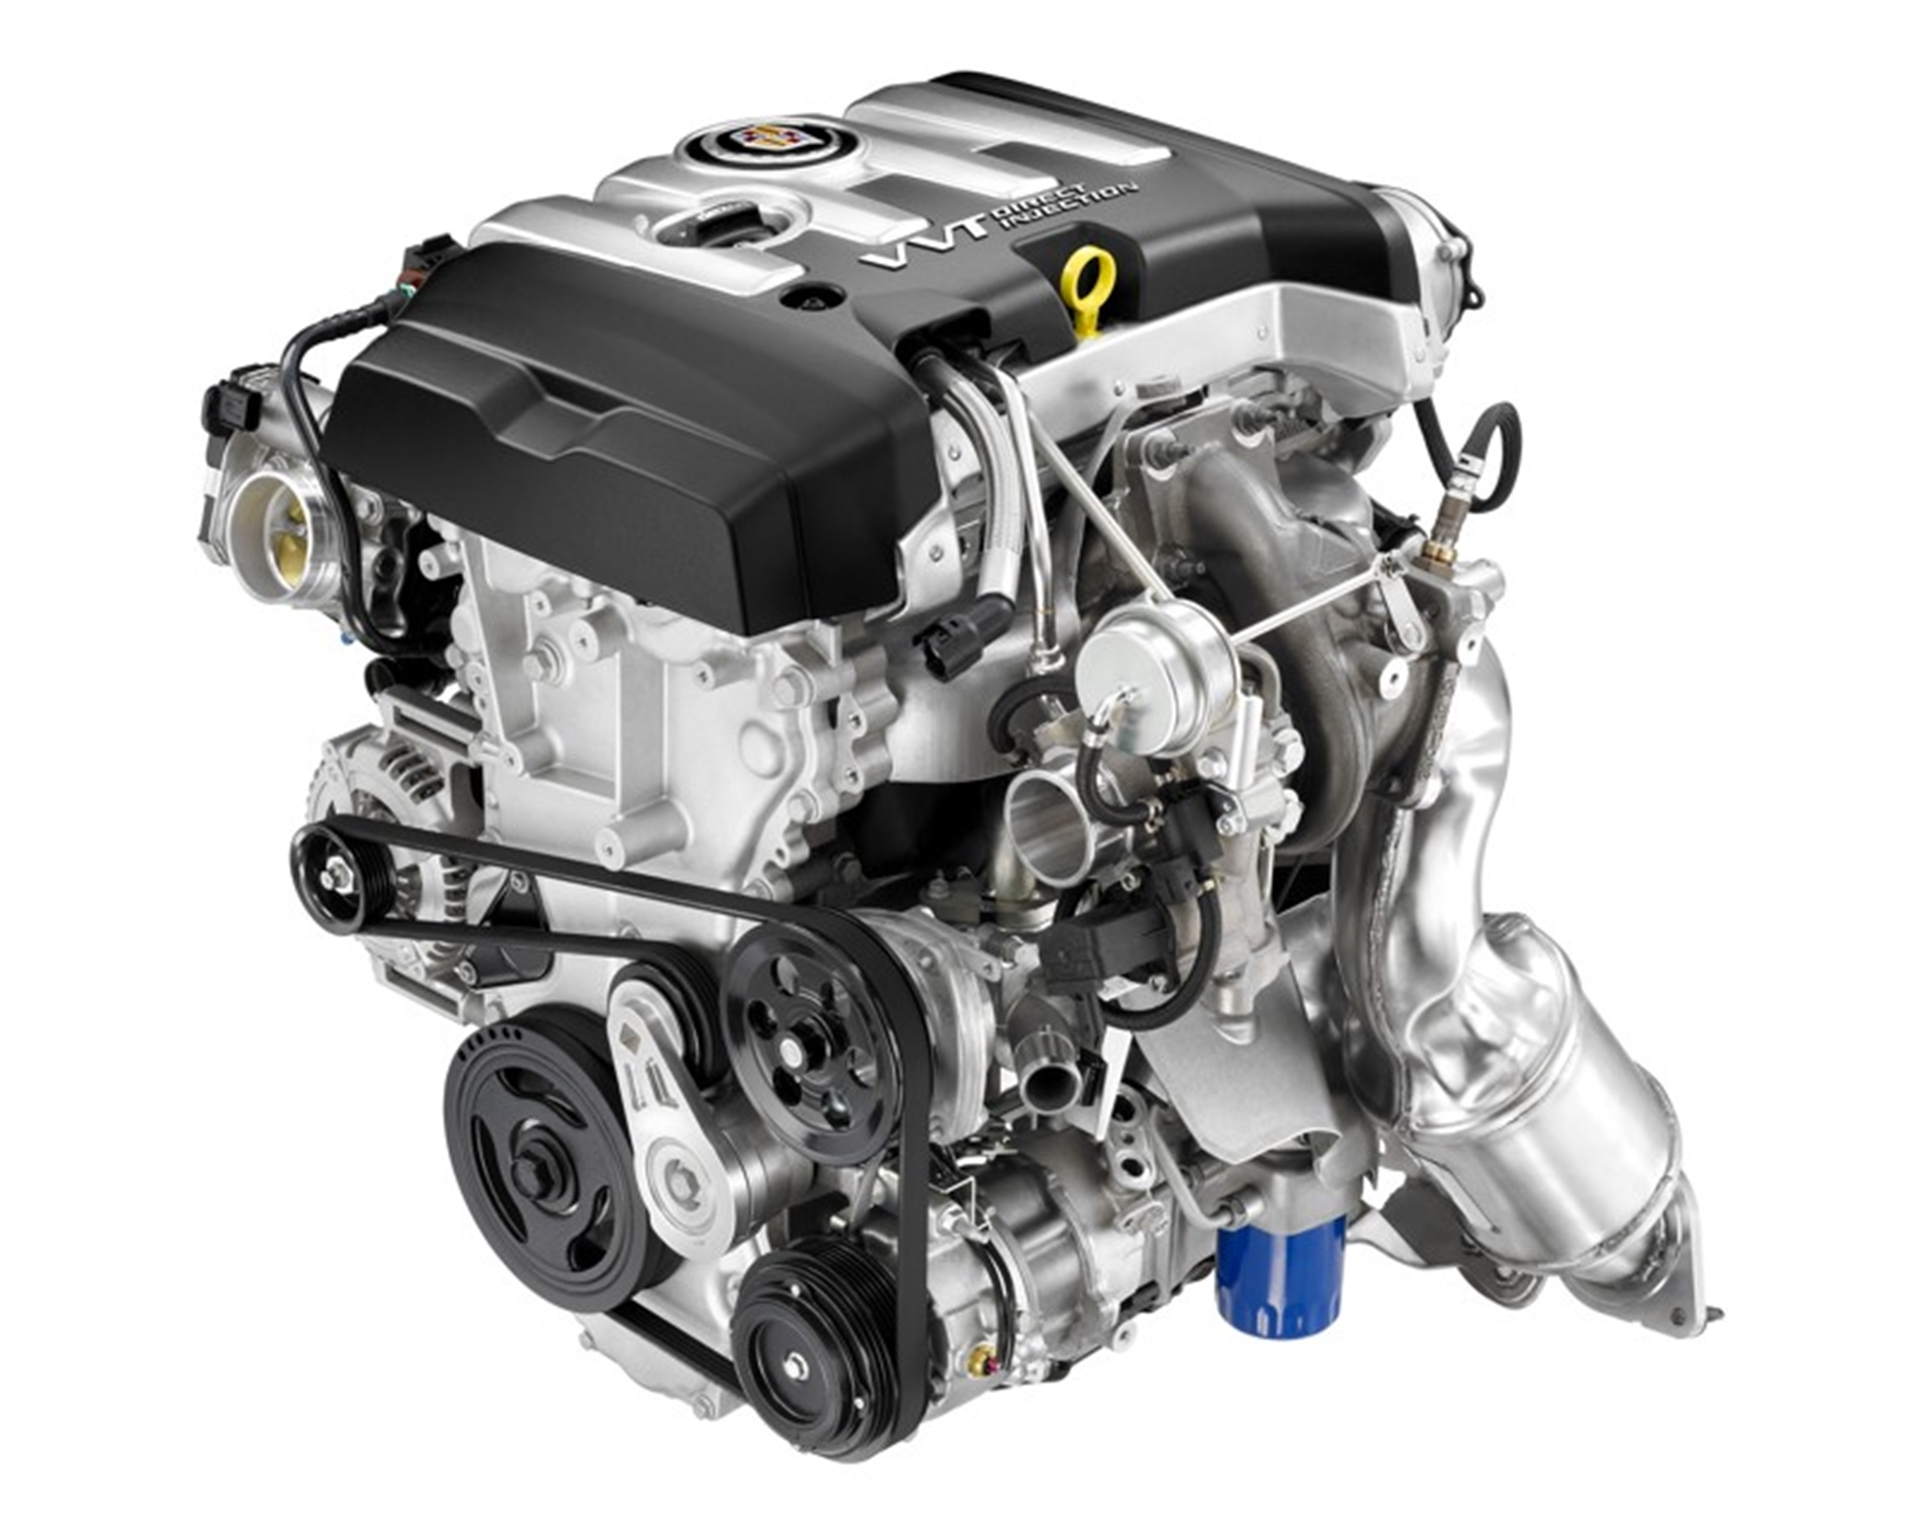 New_2_0_L_Turbo_Engine_Boosts_the_Cadillac_ATS_1